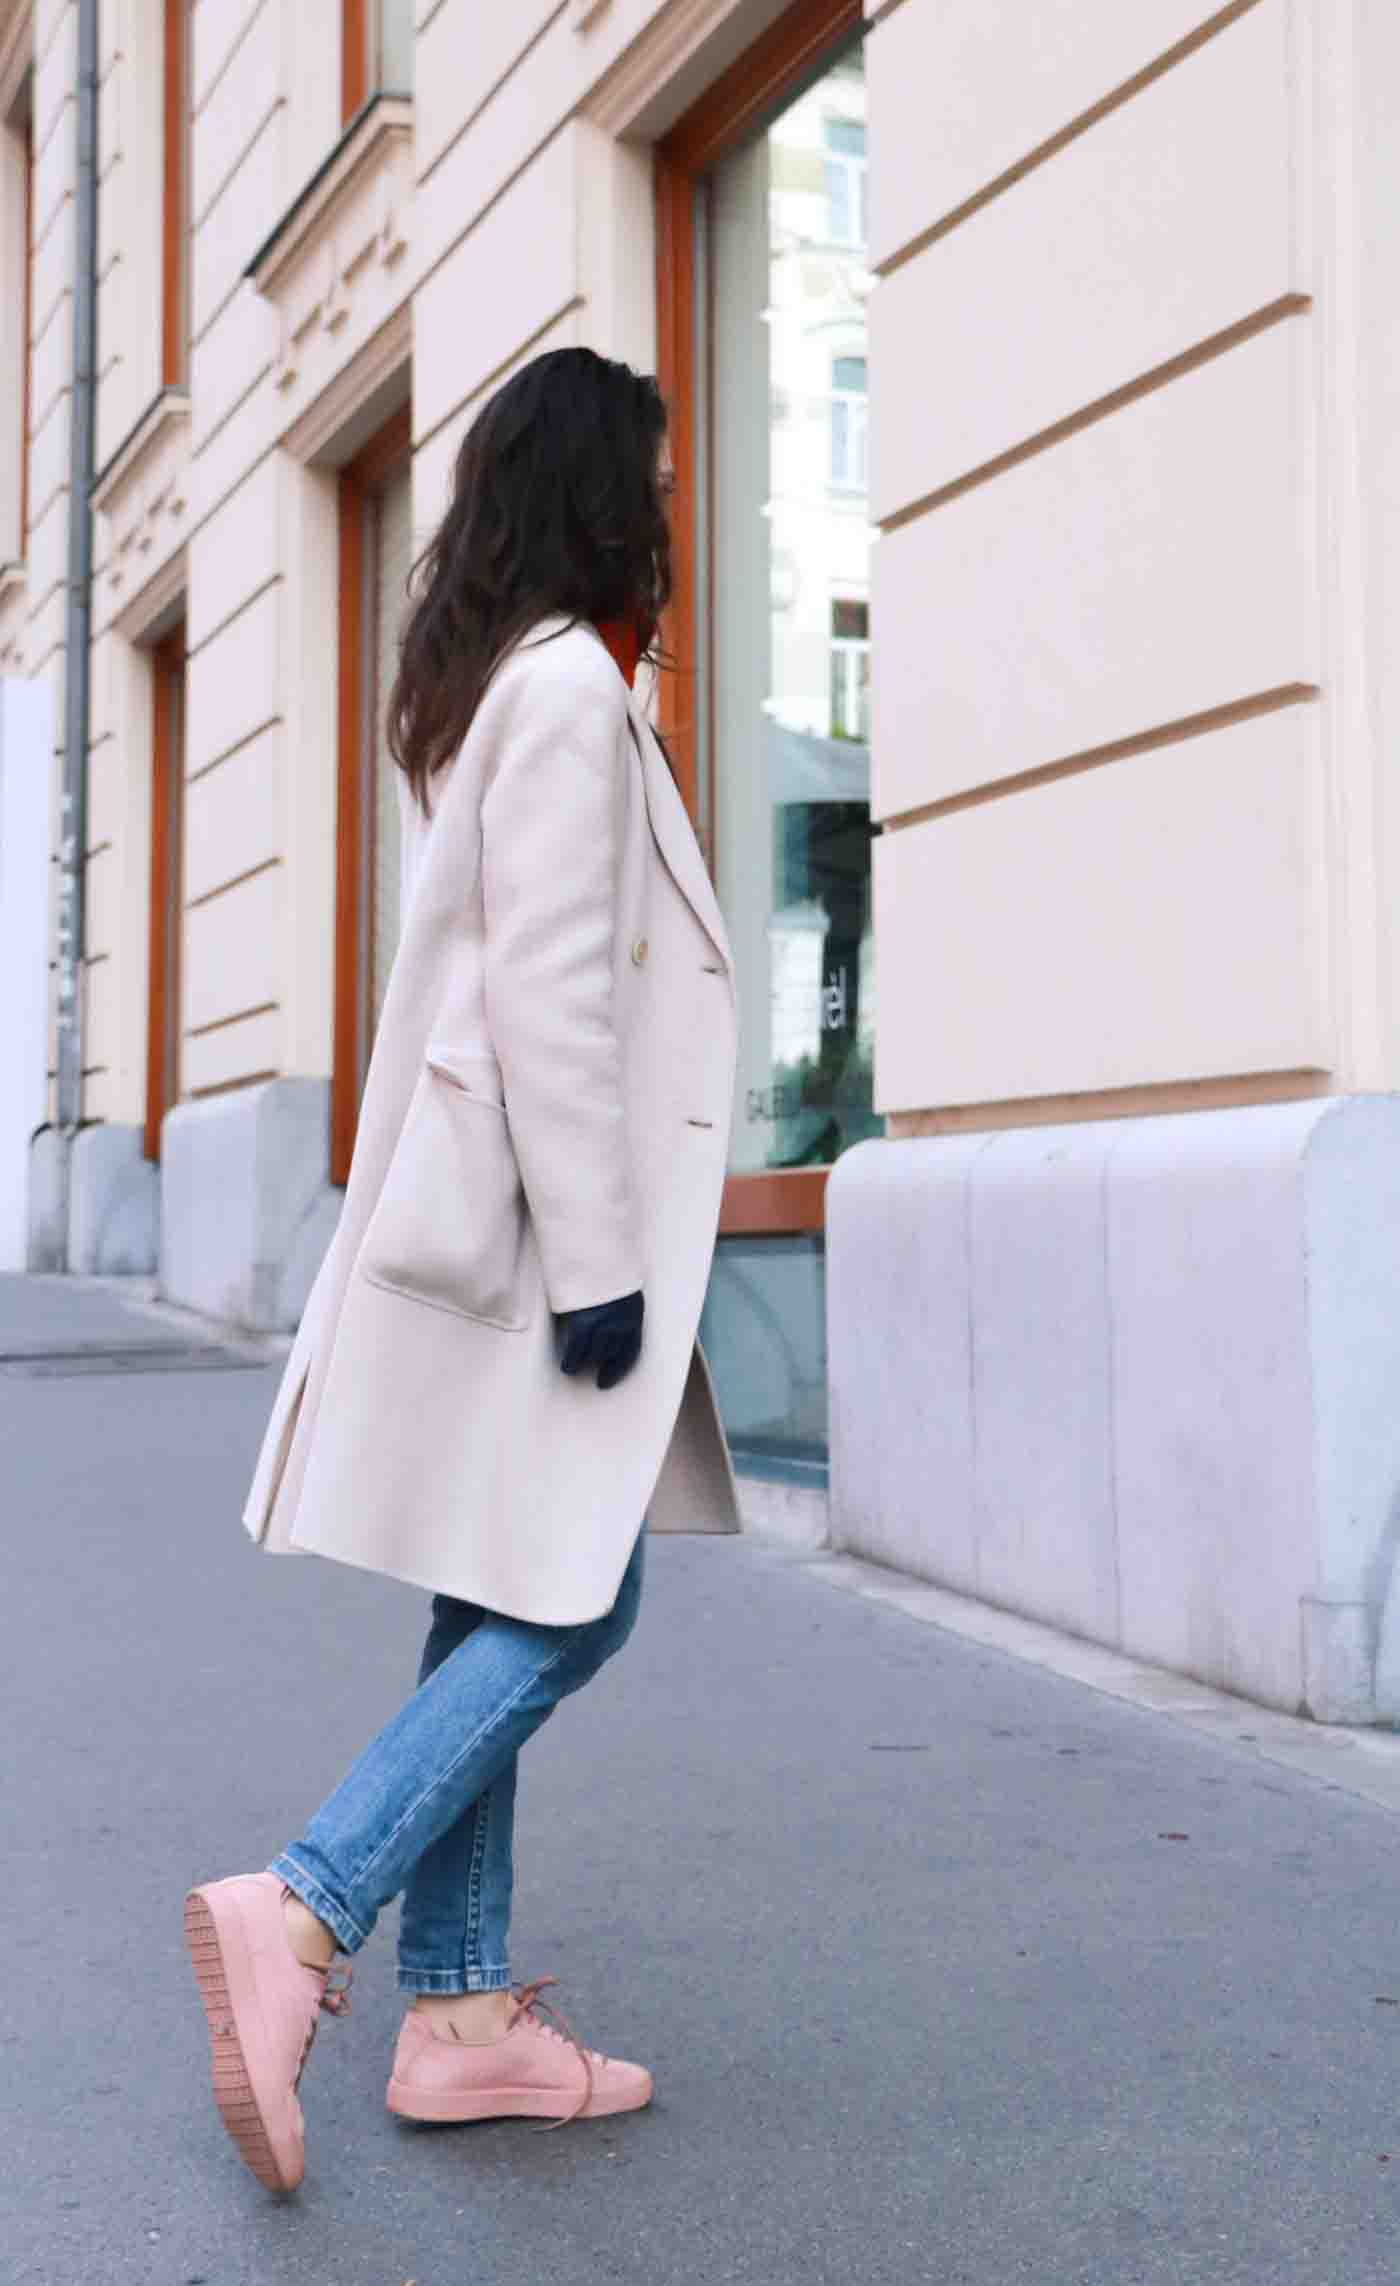 Fashion Blogger Veronika Lipar of Brunette from Wall wearing light blue jeans, dusty pink sneakers and Weekend Maxmara double breasted coat